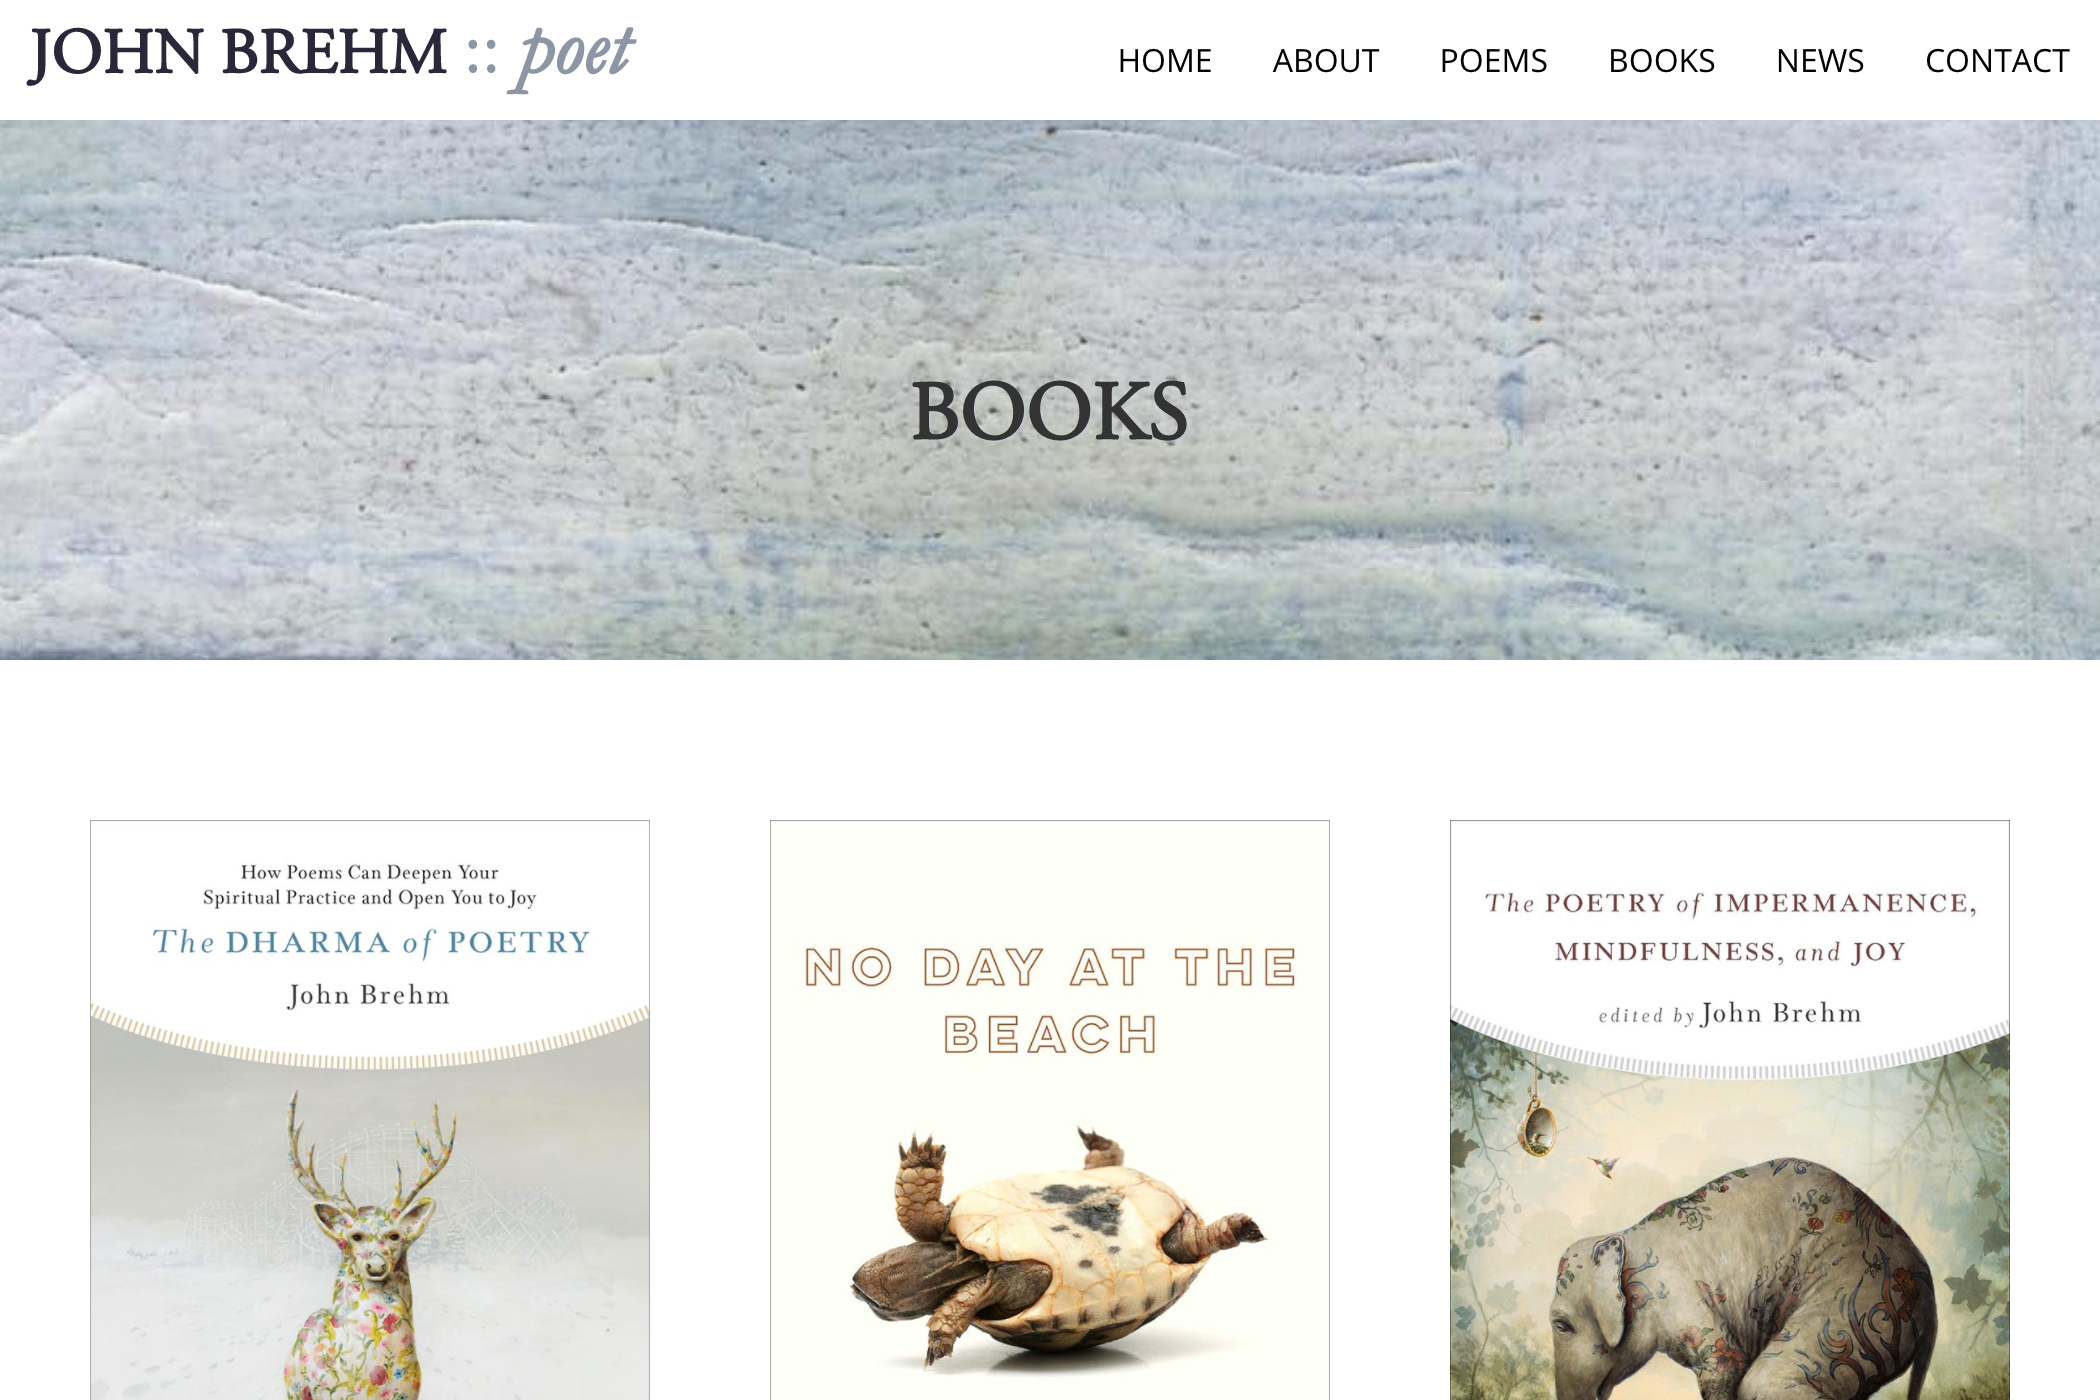 website design for a writer - books page for a poet